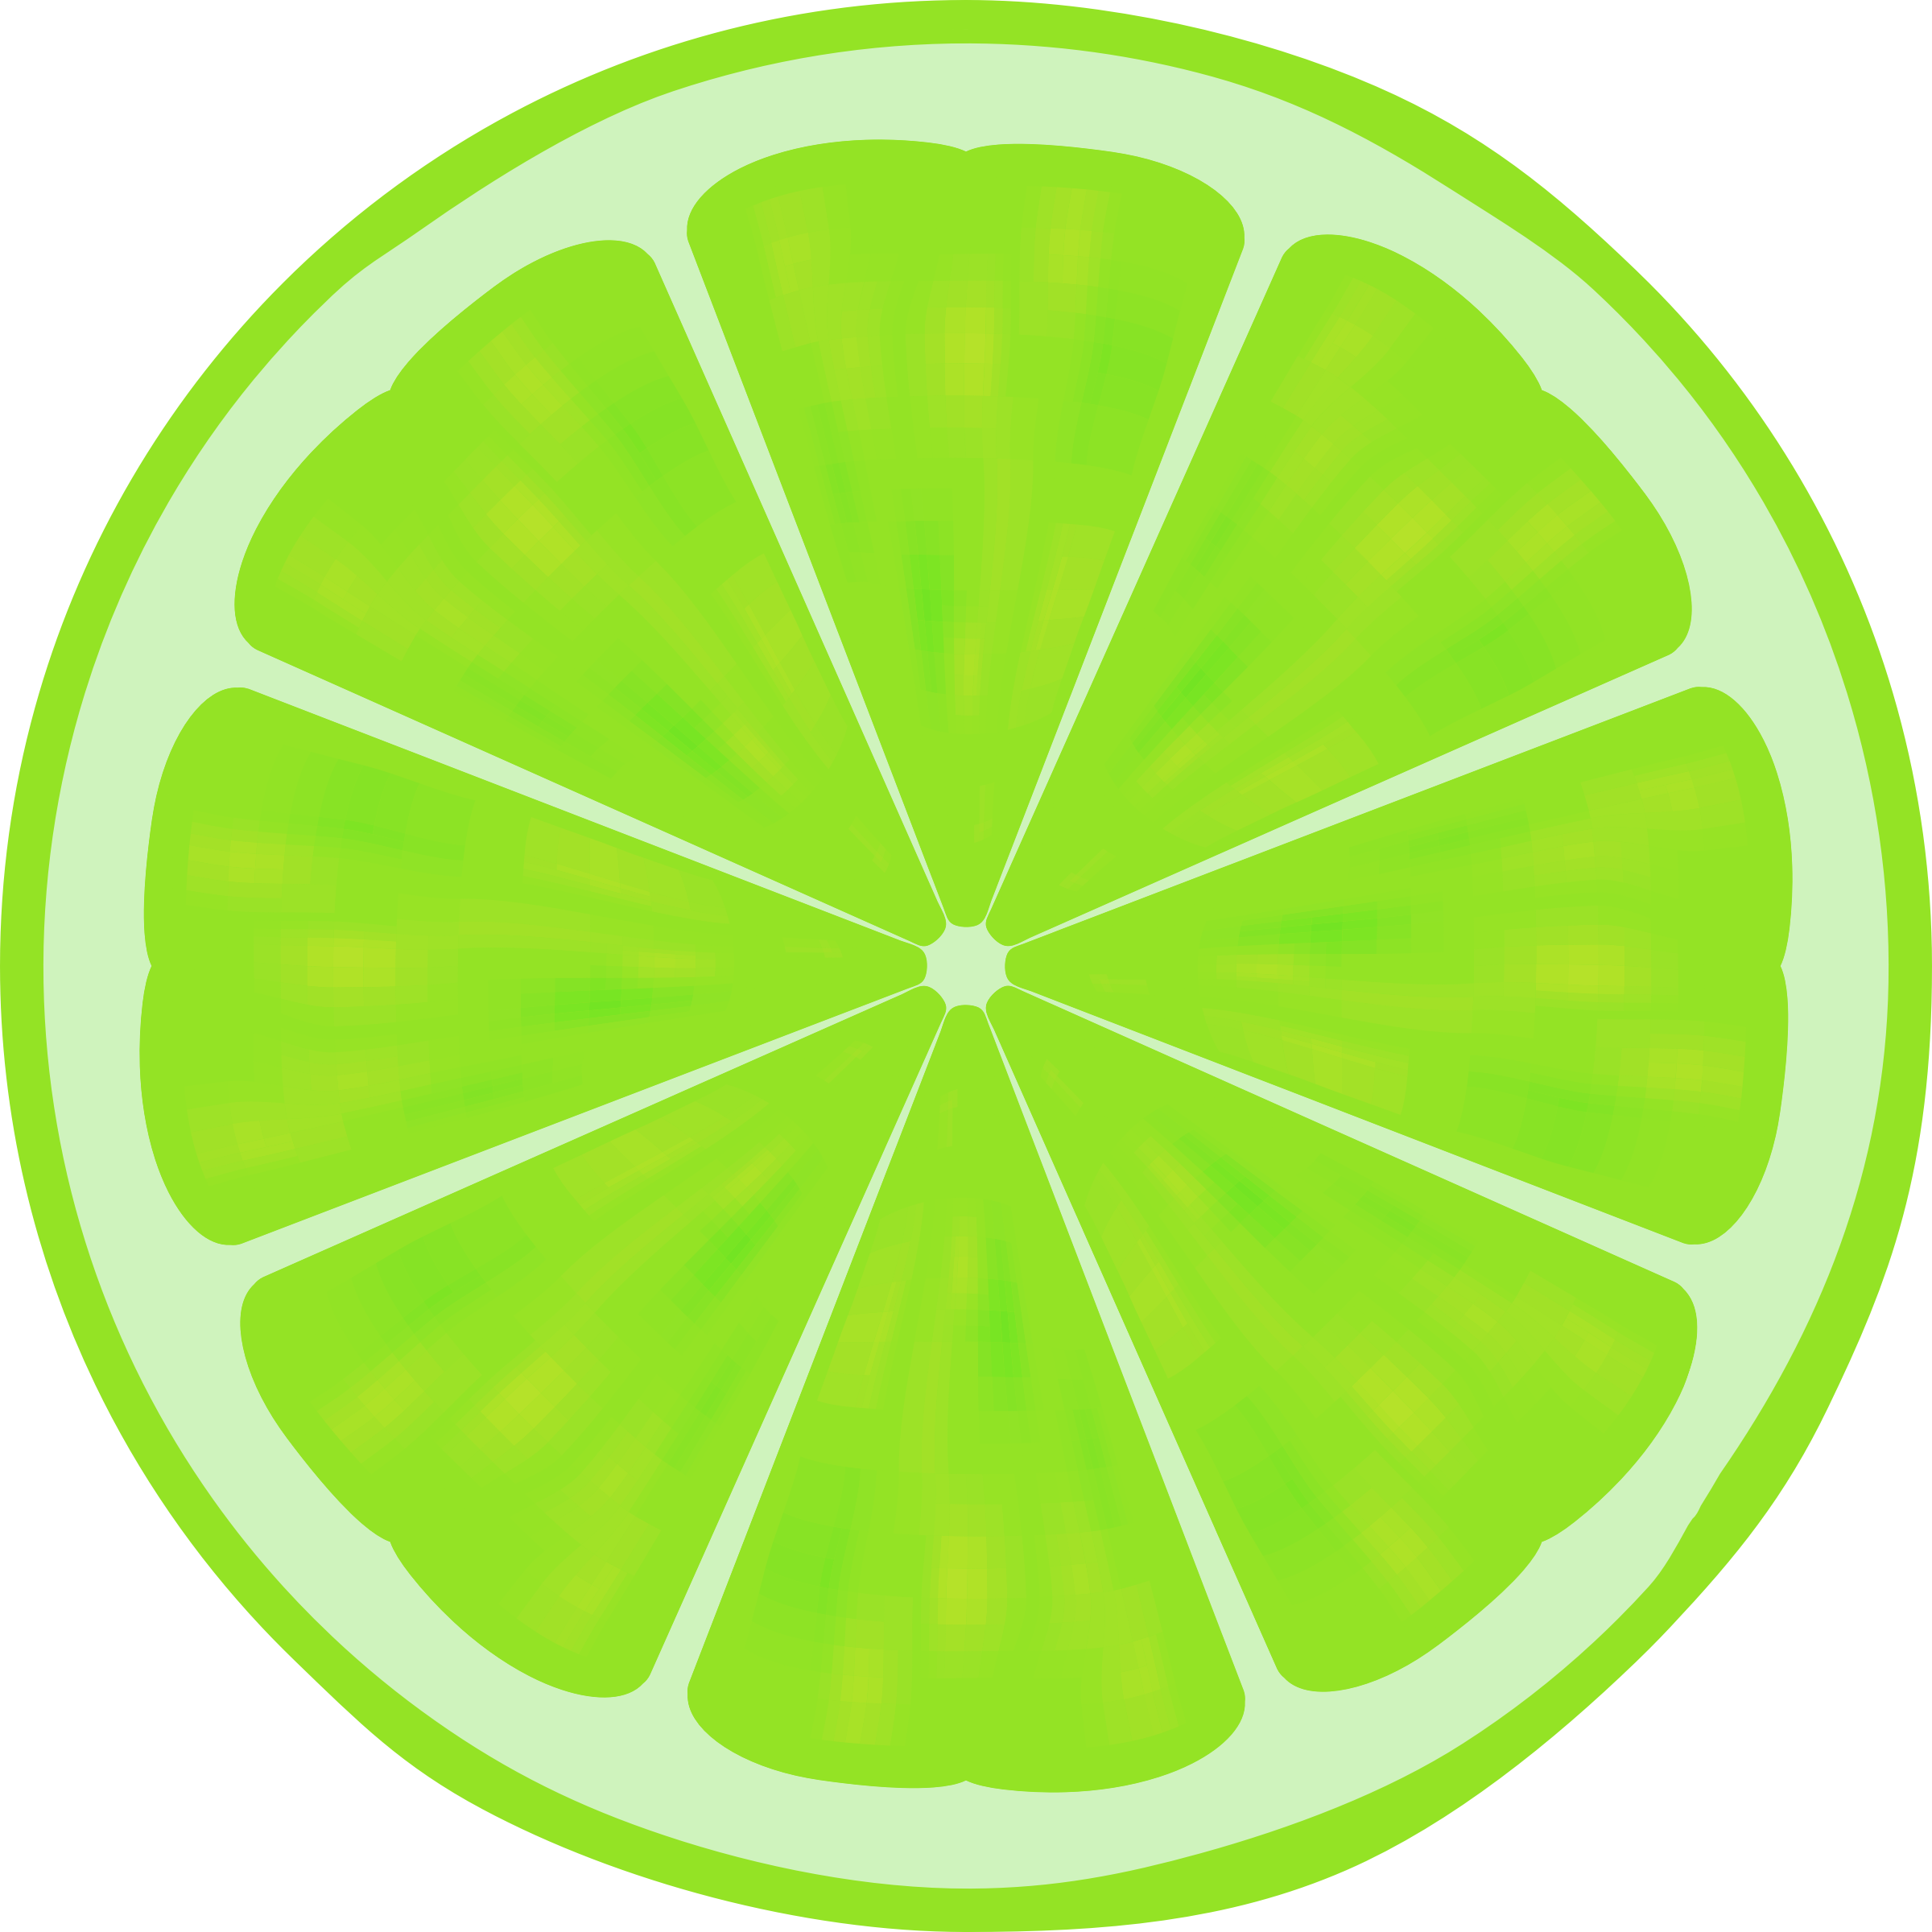 Lime clipart sliced, Lime sliced Transparent FREE for.